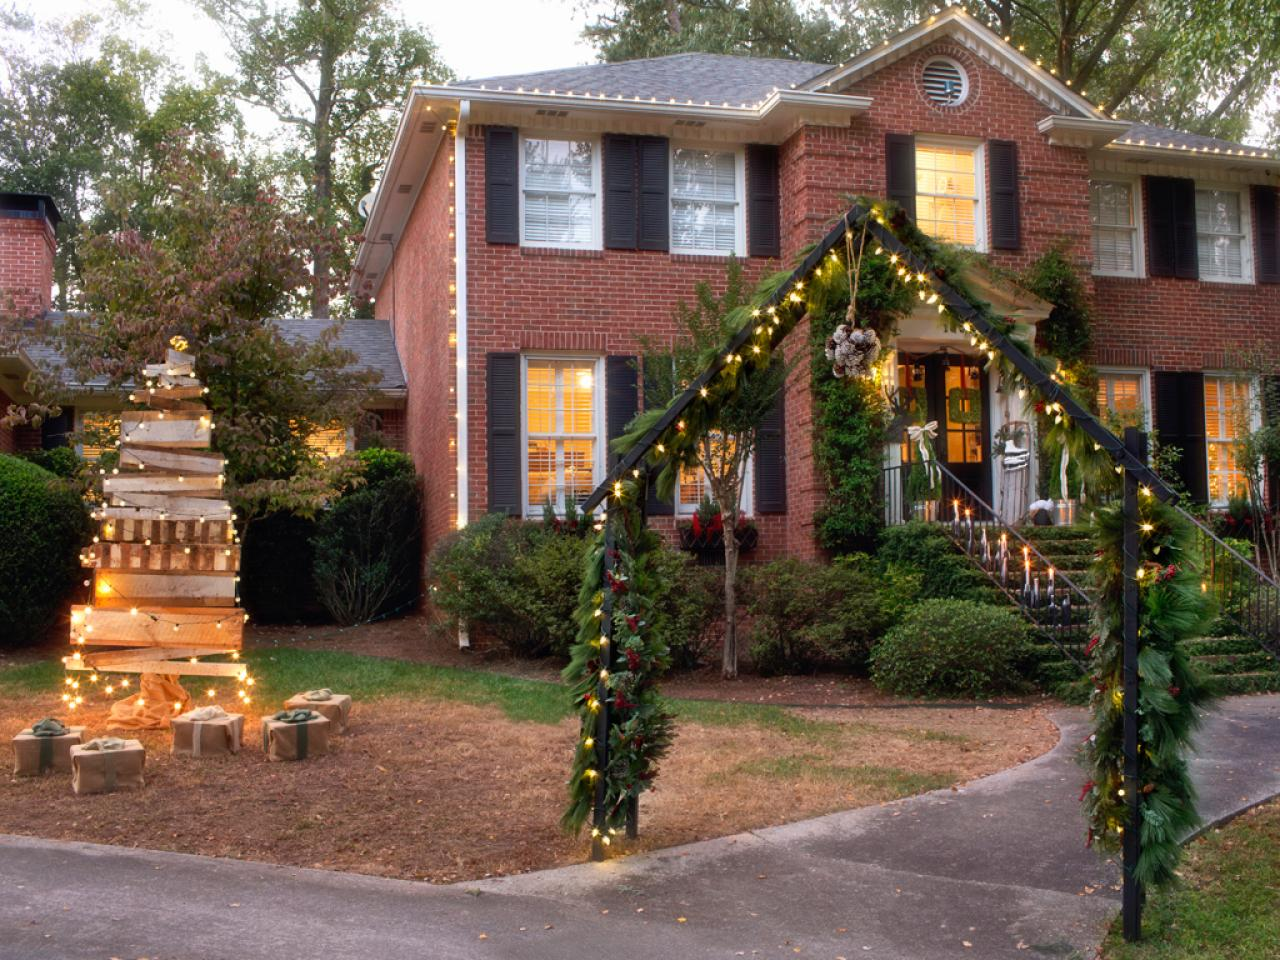 Take a video tour of hgtv 39 s holiday house interior for Christmas home ideas